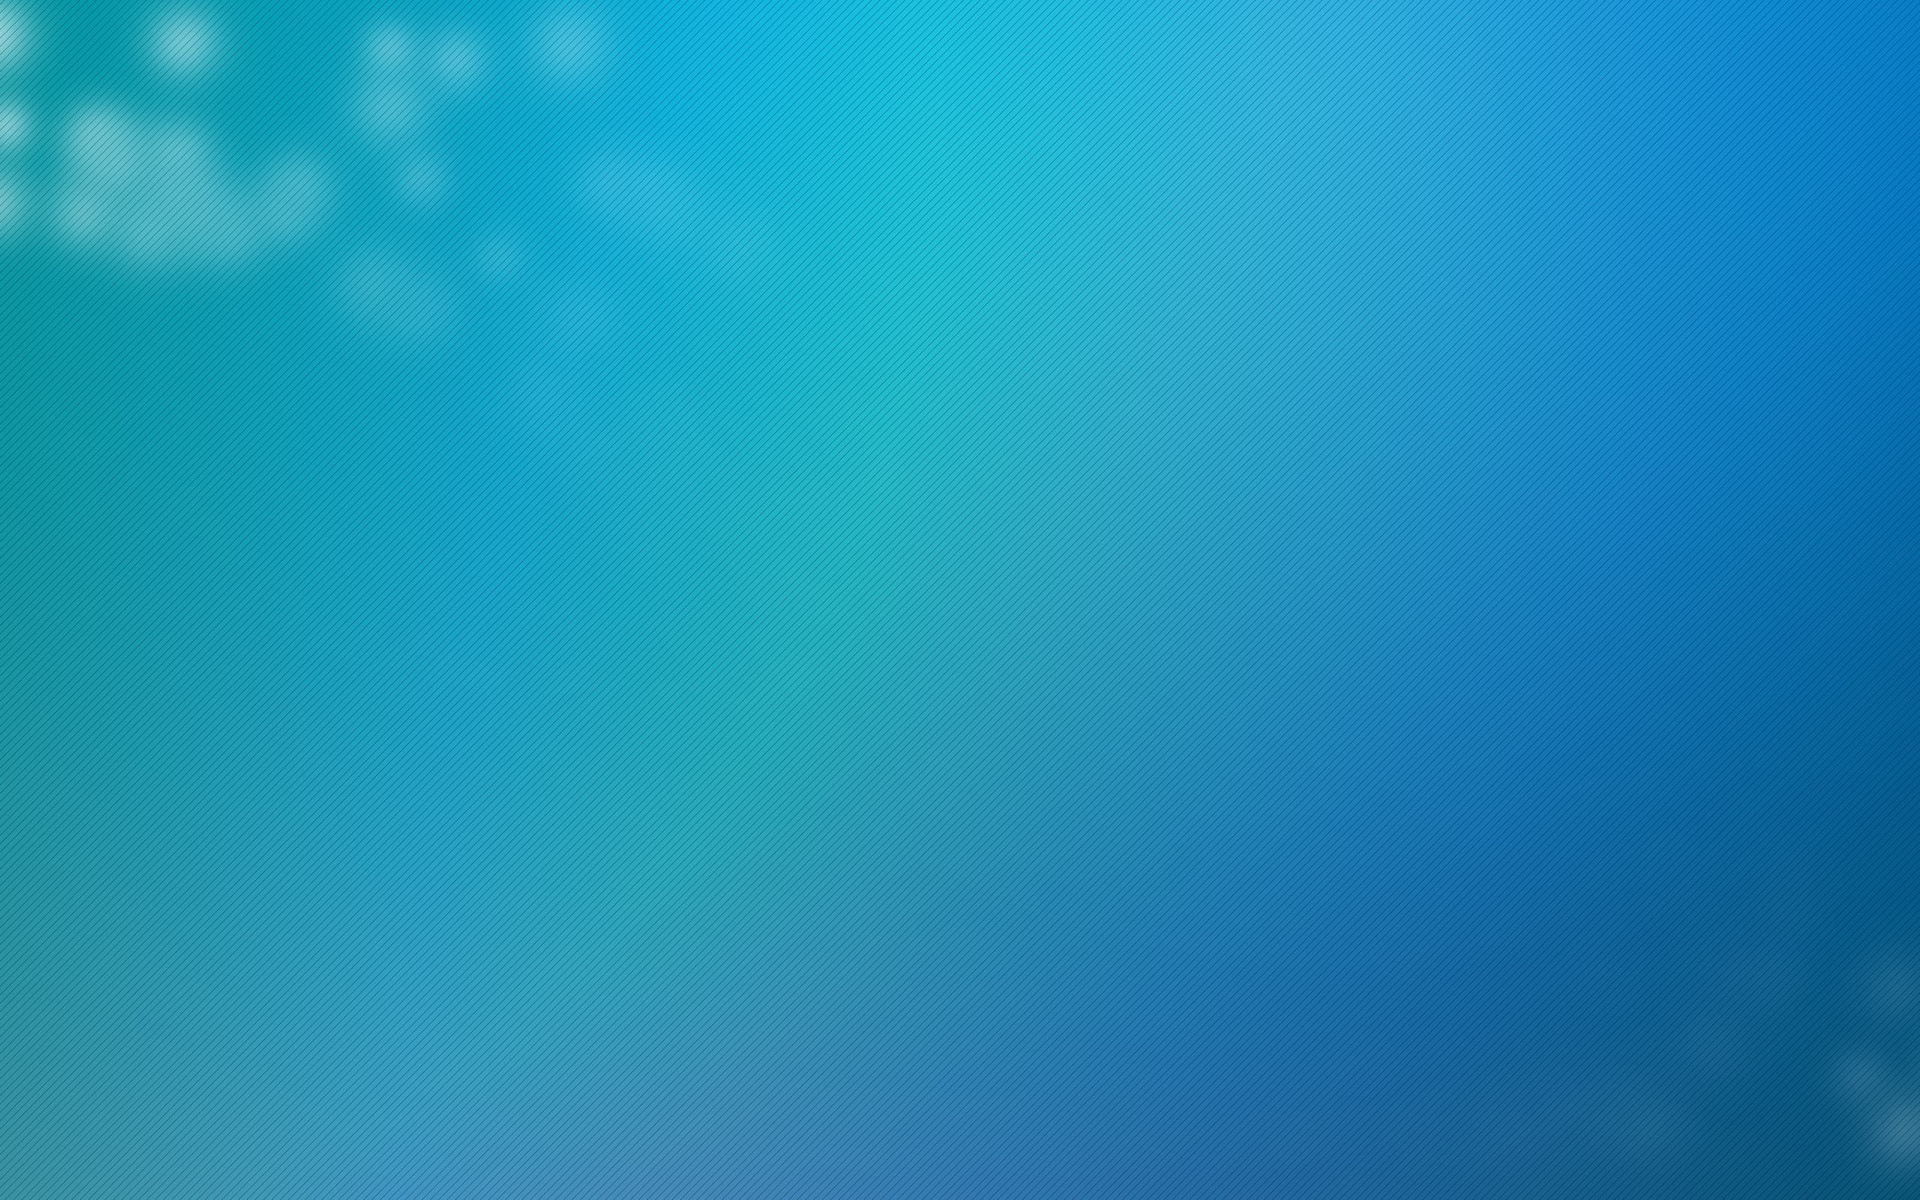 1 Turquoise Blue Hd Wallpapers Background Images